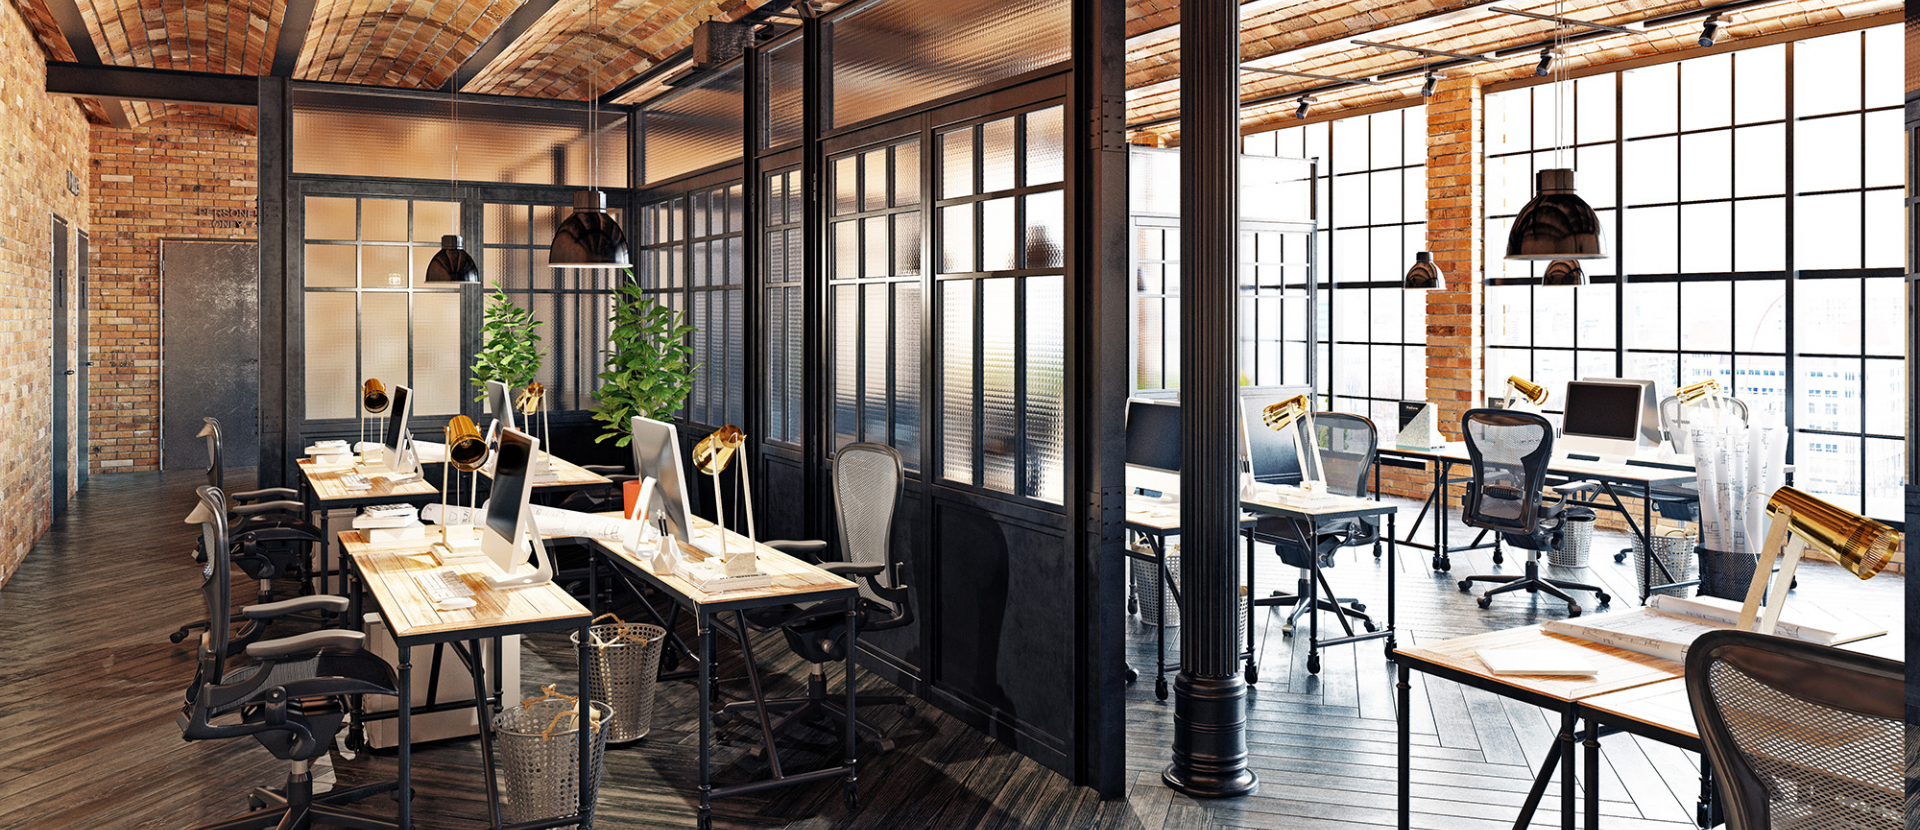 photo of a very wood-focused office space with japanese style paneled walls